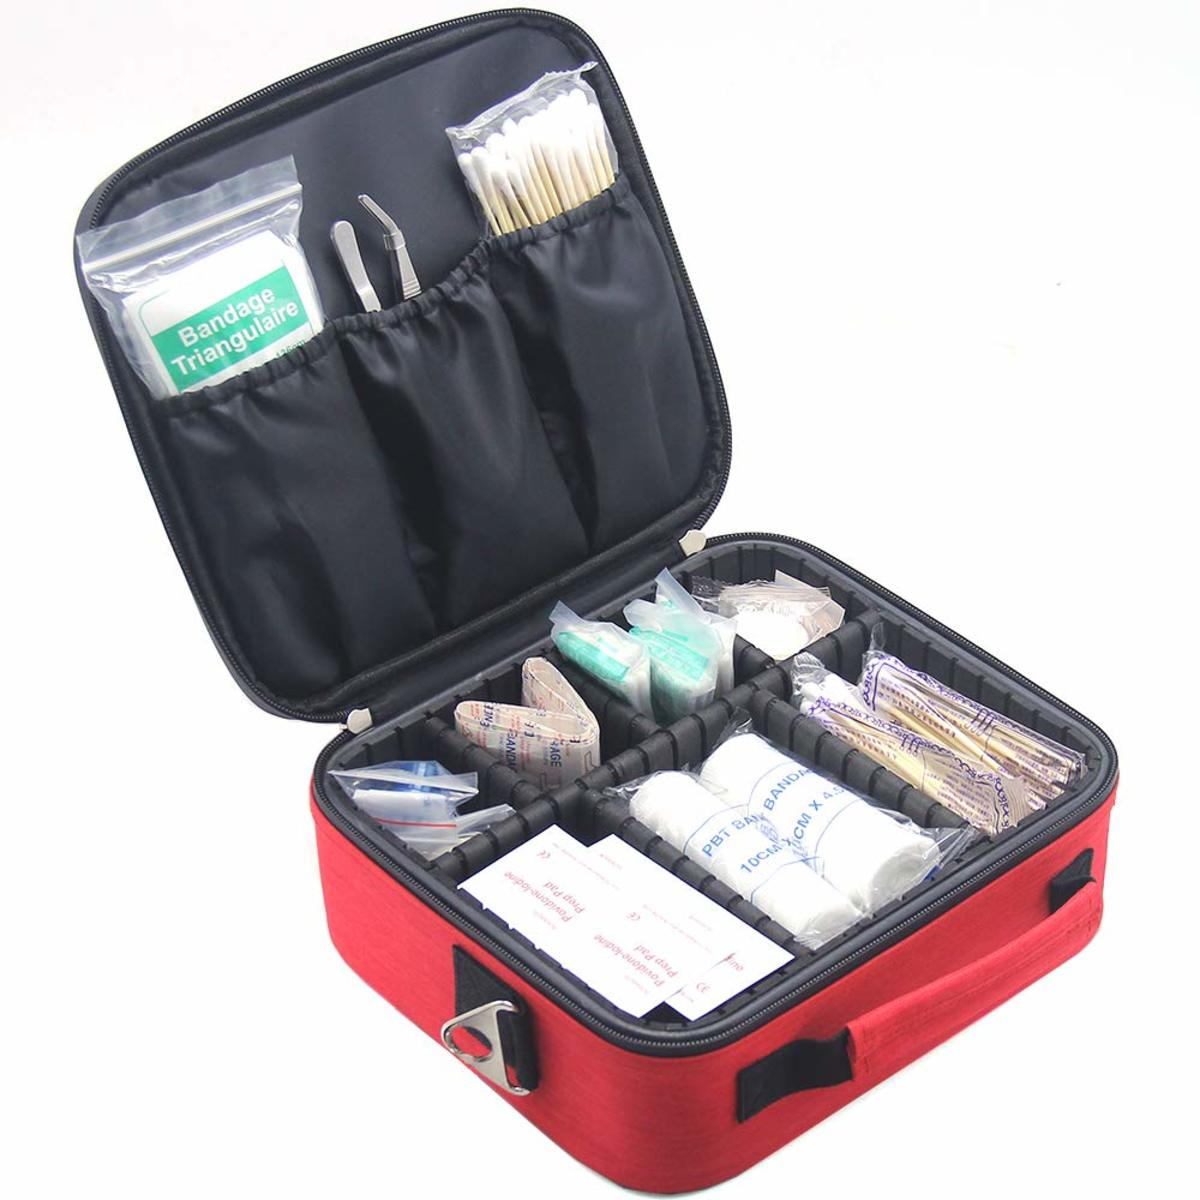 MONSTINA Empty First Aid Kit Bag